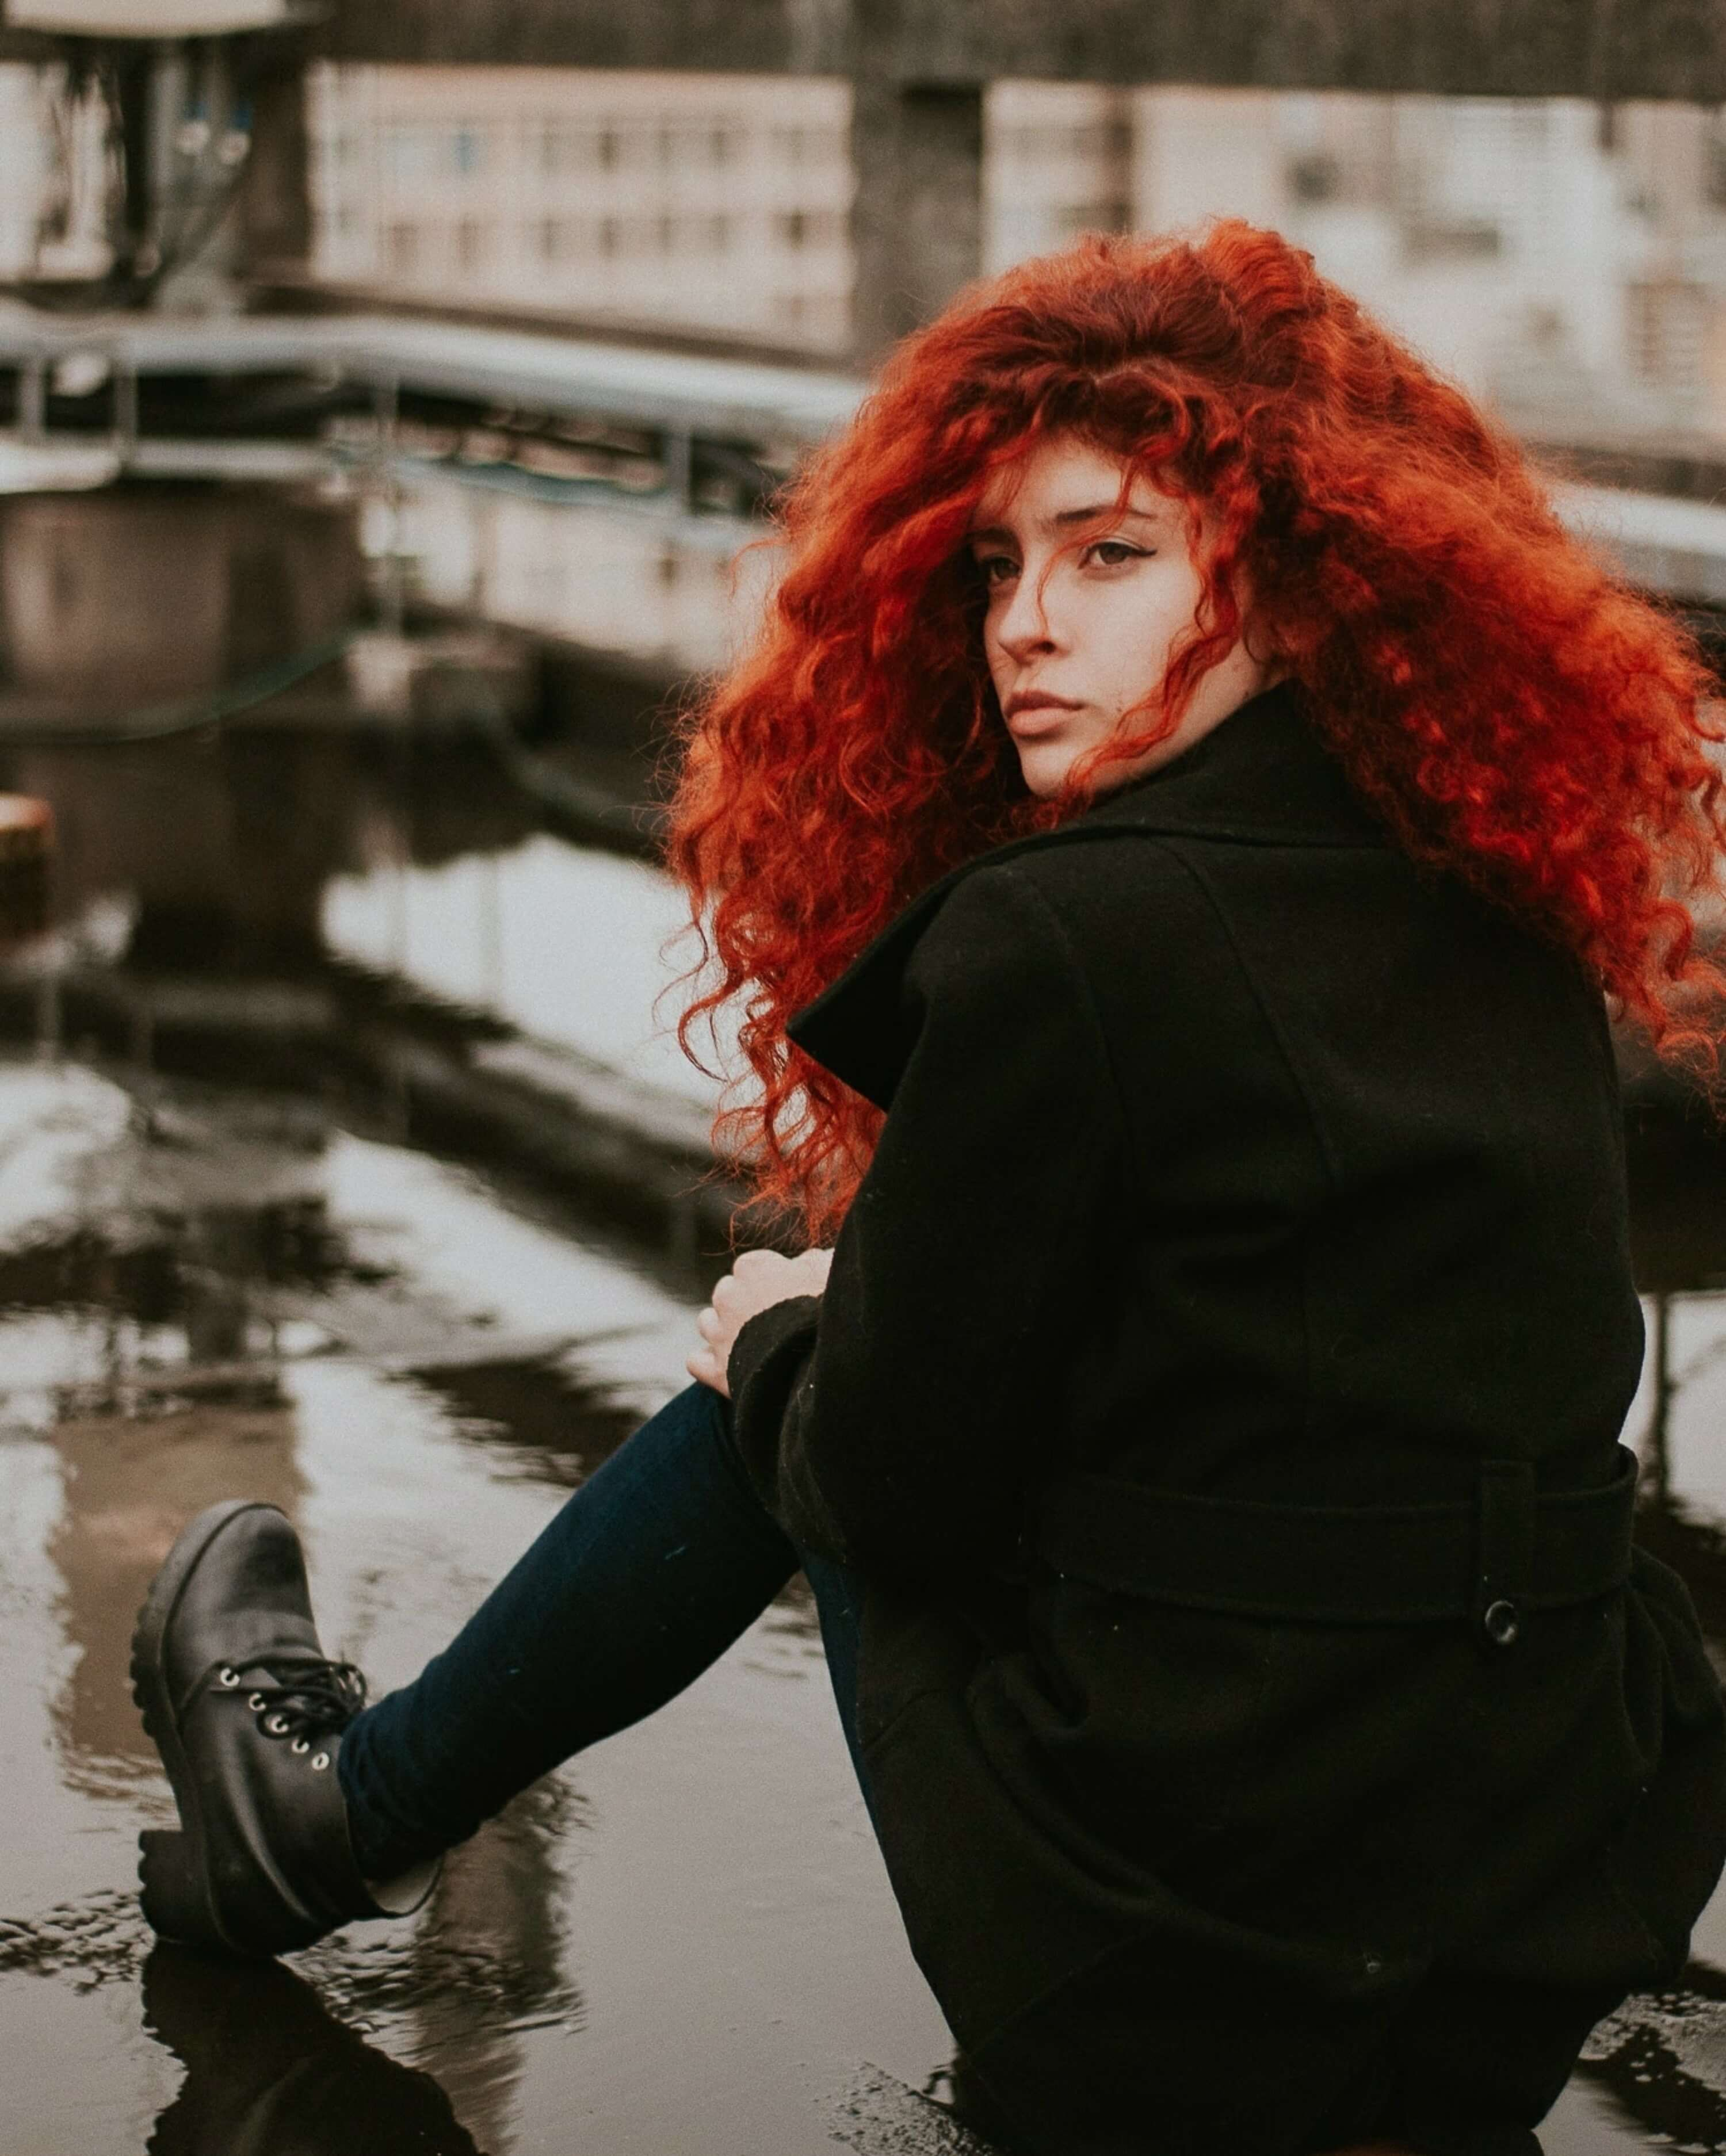 Woman with red curl hair looking back.